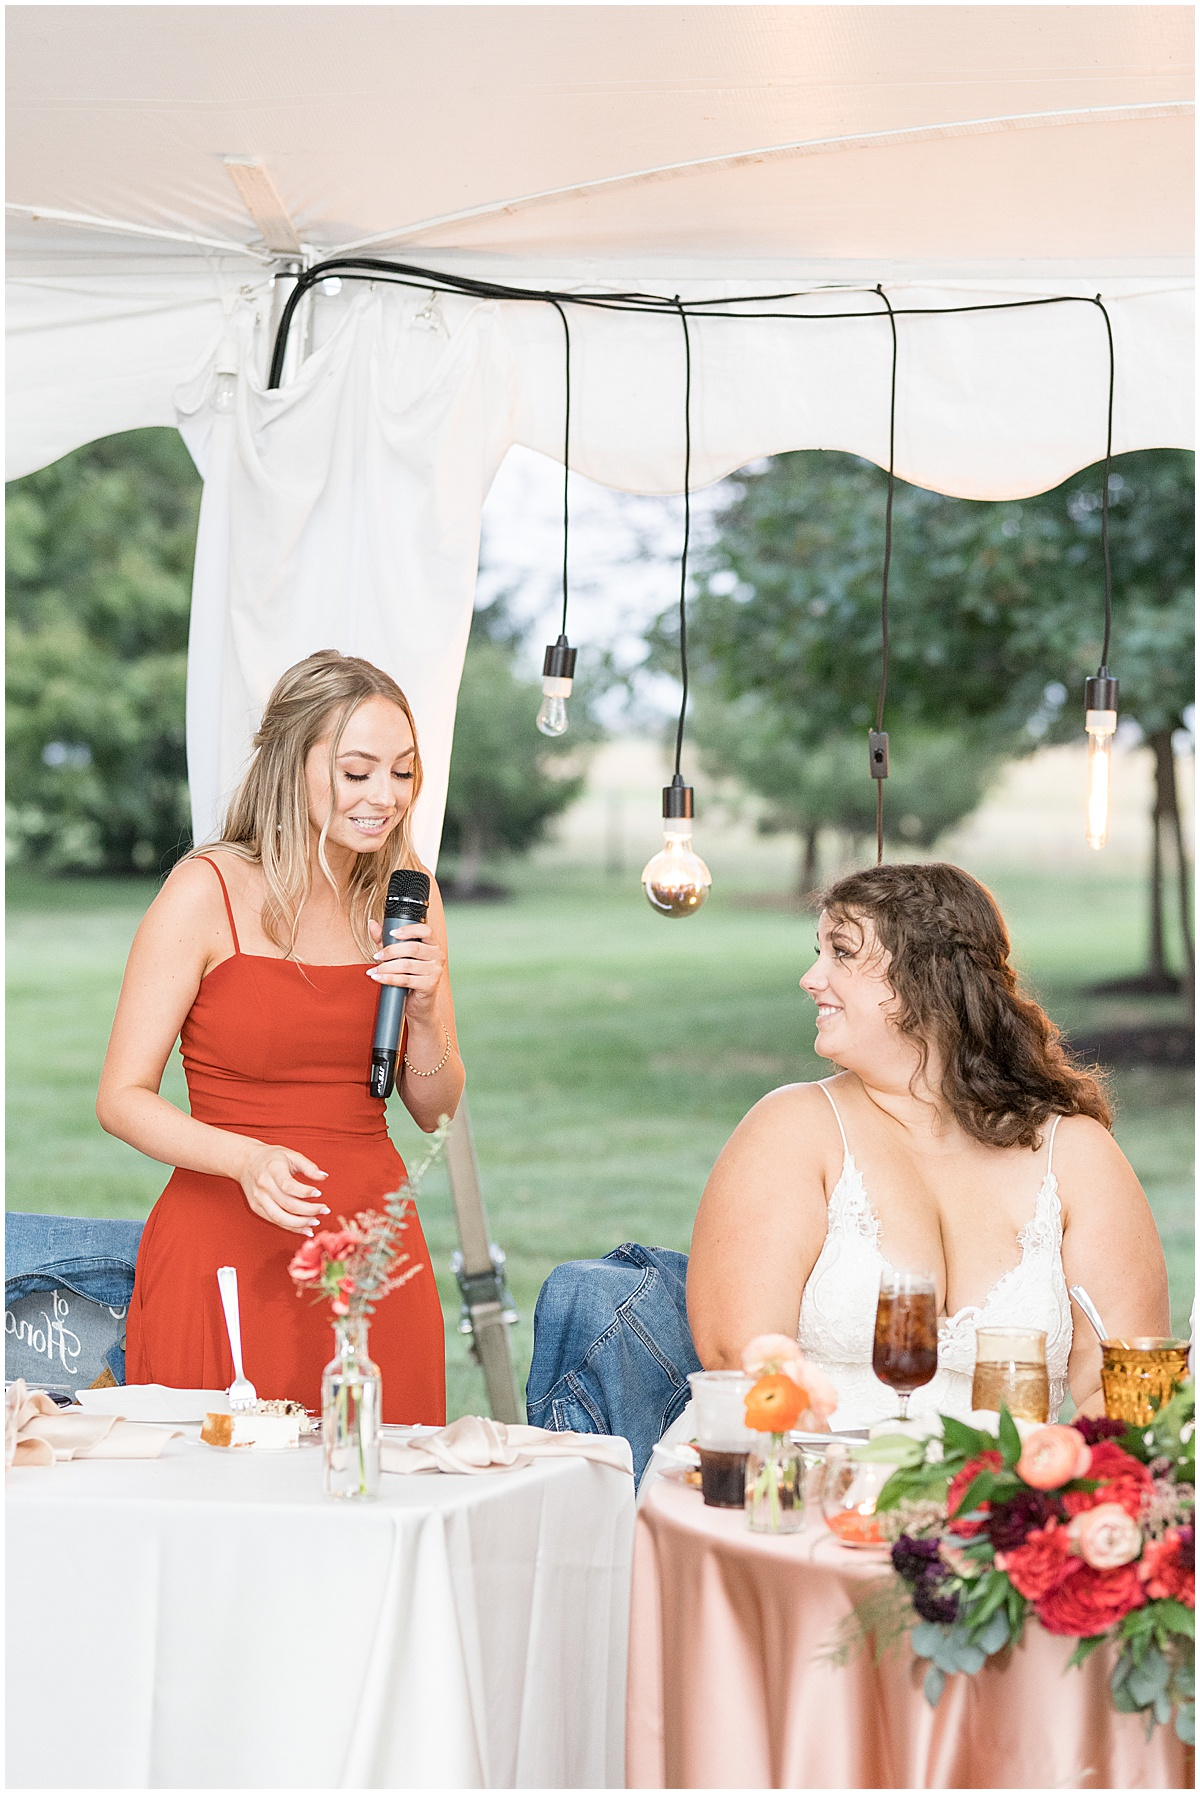 Speeches at outdoor private property wedding in Frankfort, Indiana by Victoria Rayburn Photography